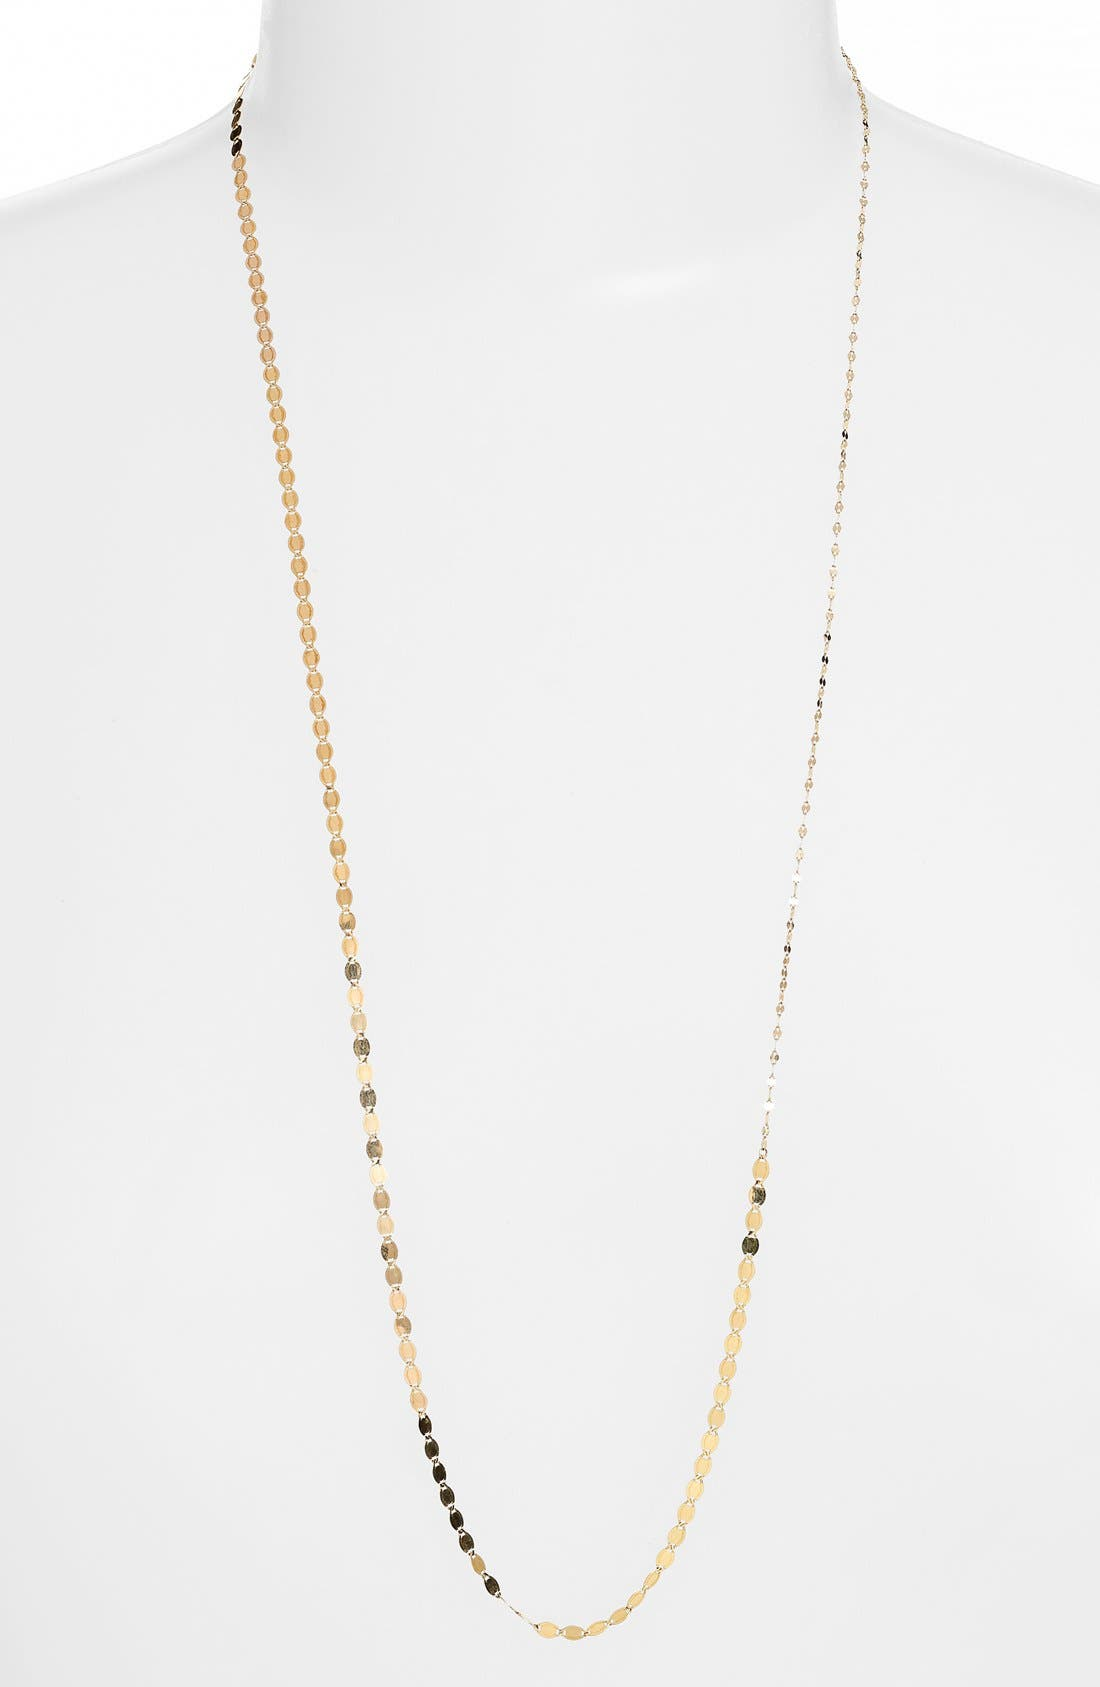 Main Image - Lana Jewelry 'Long Vanity' Strand Necklace